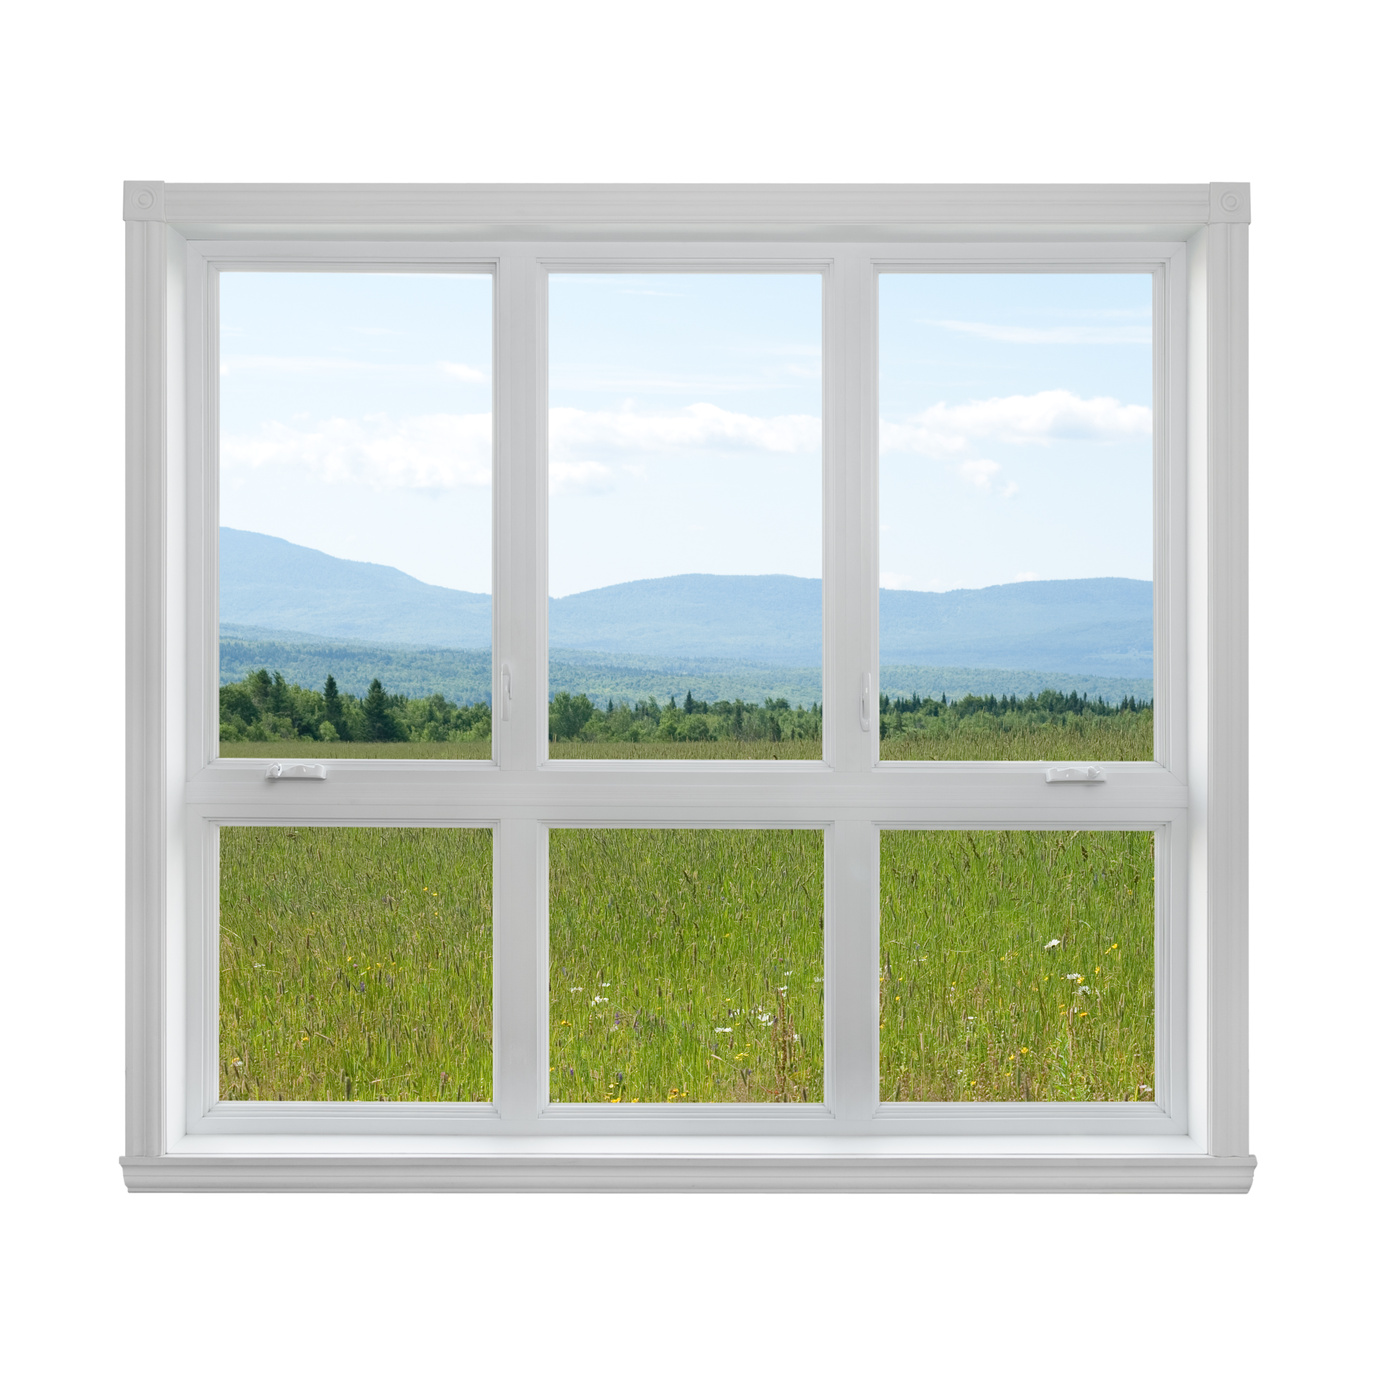 Energy efficient windows window film can reduce solar for Energy efficient windows